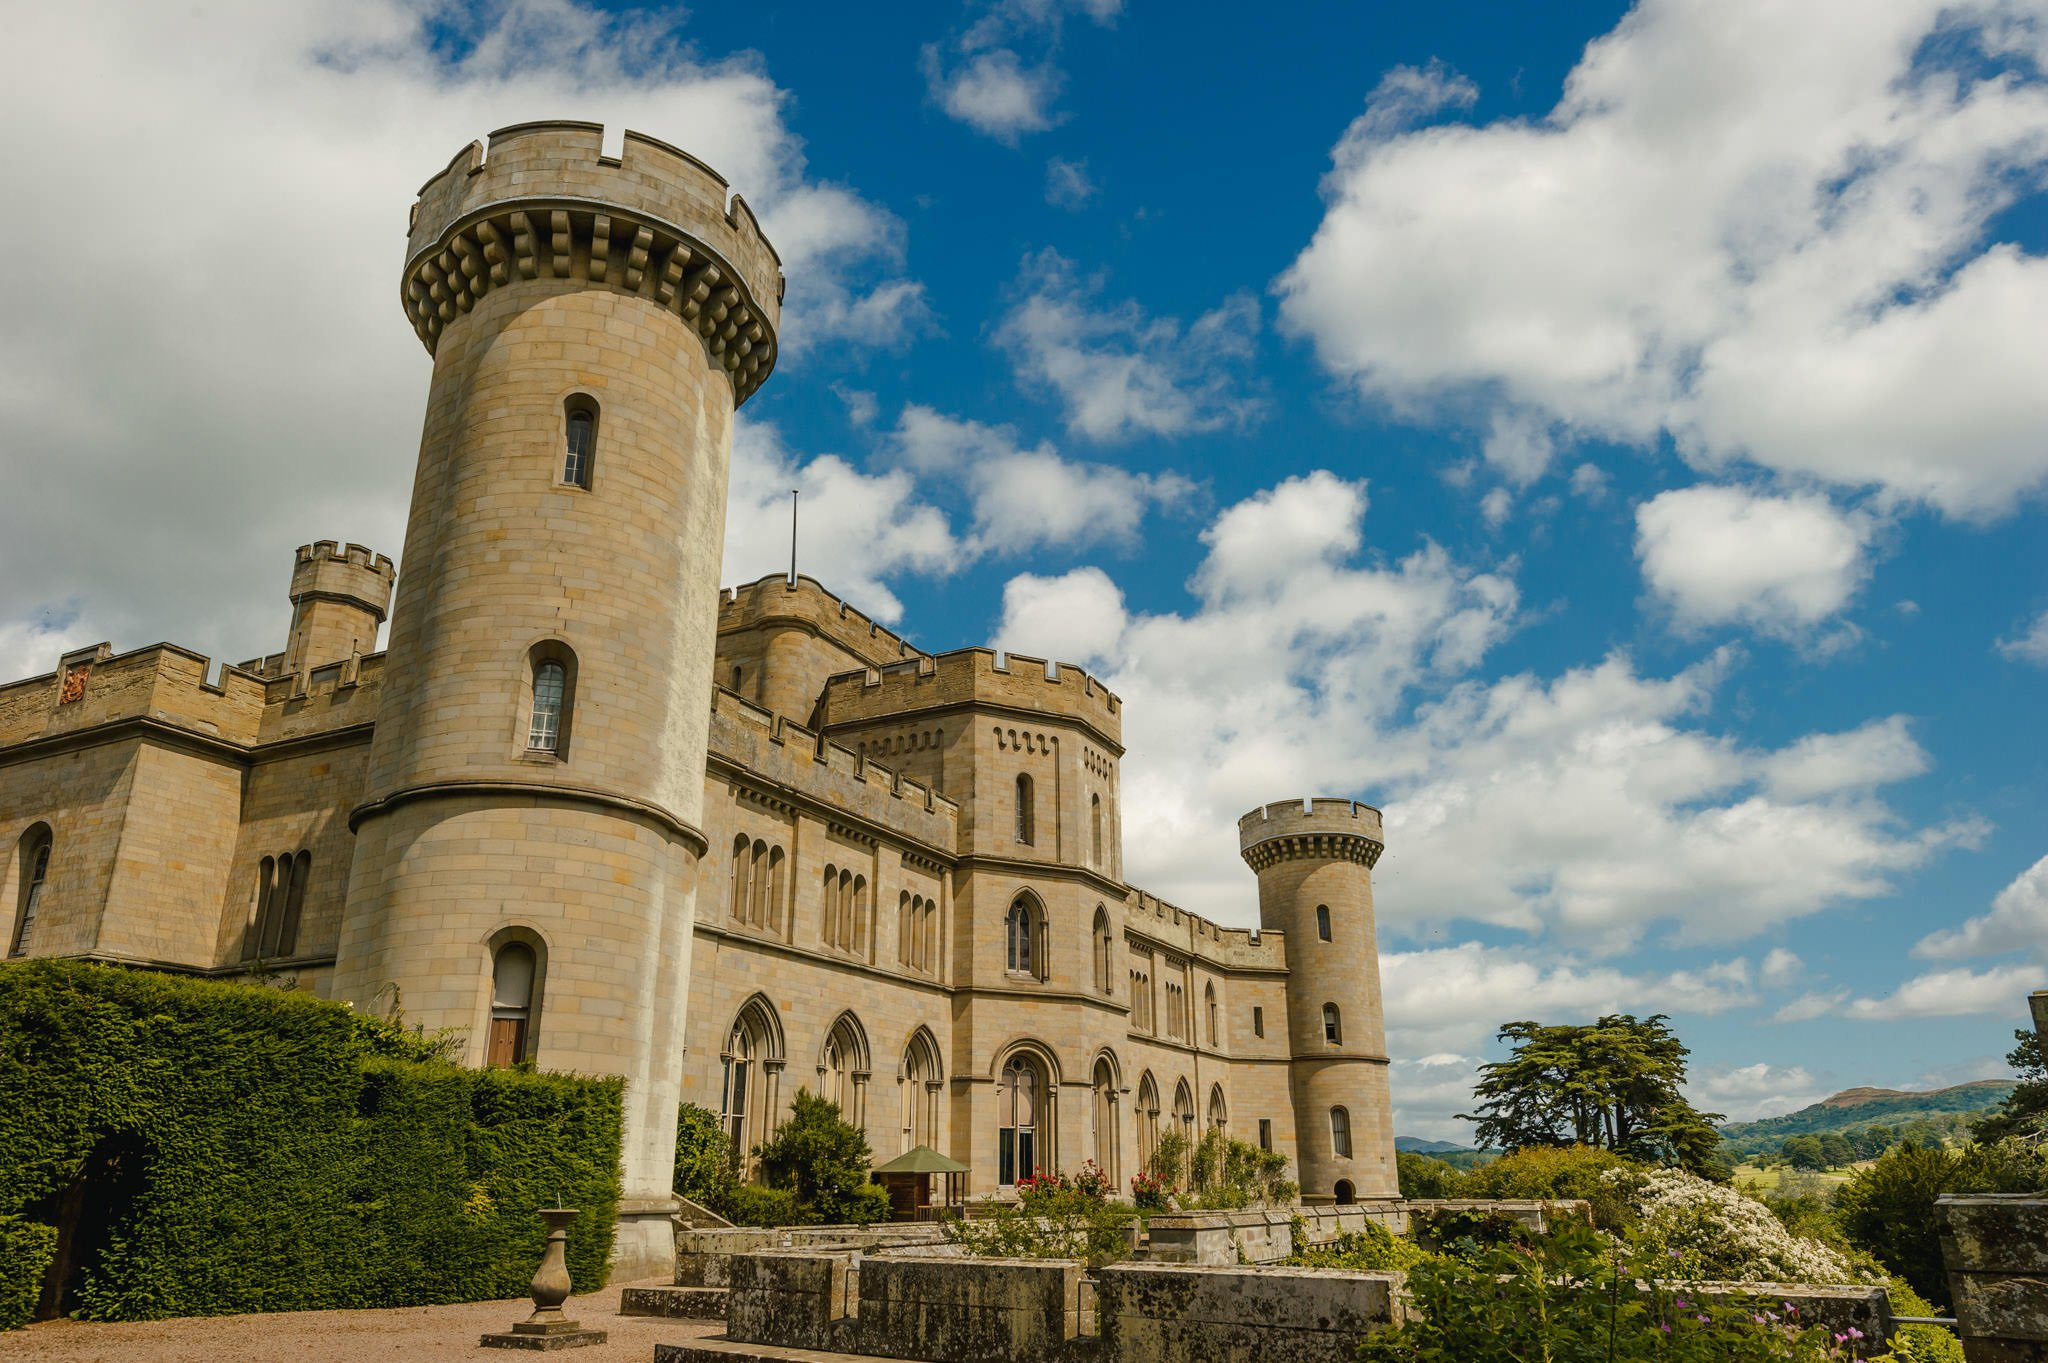 eastnor castle wedding pictures 10 - Eastnor Castle wedding photographer Herefordshire, West Midlands - Sarah + Dean